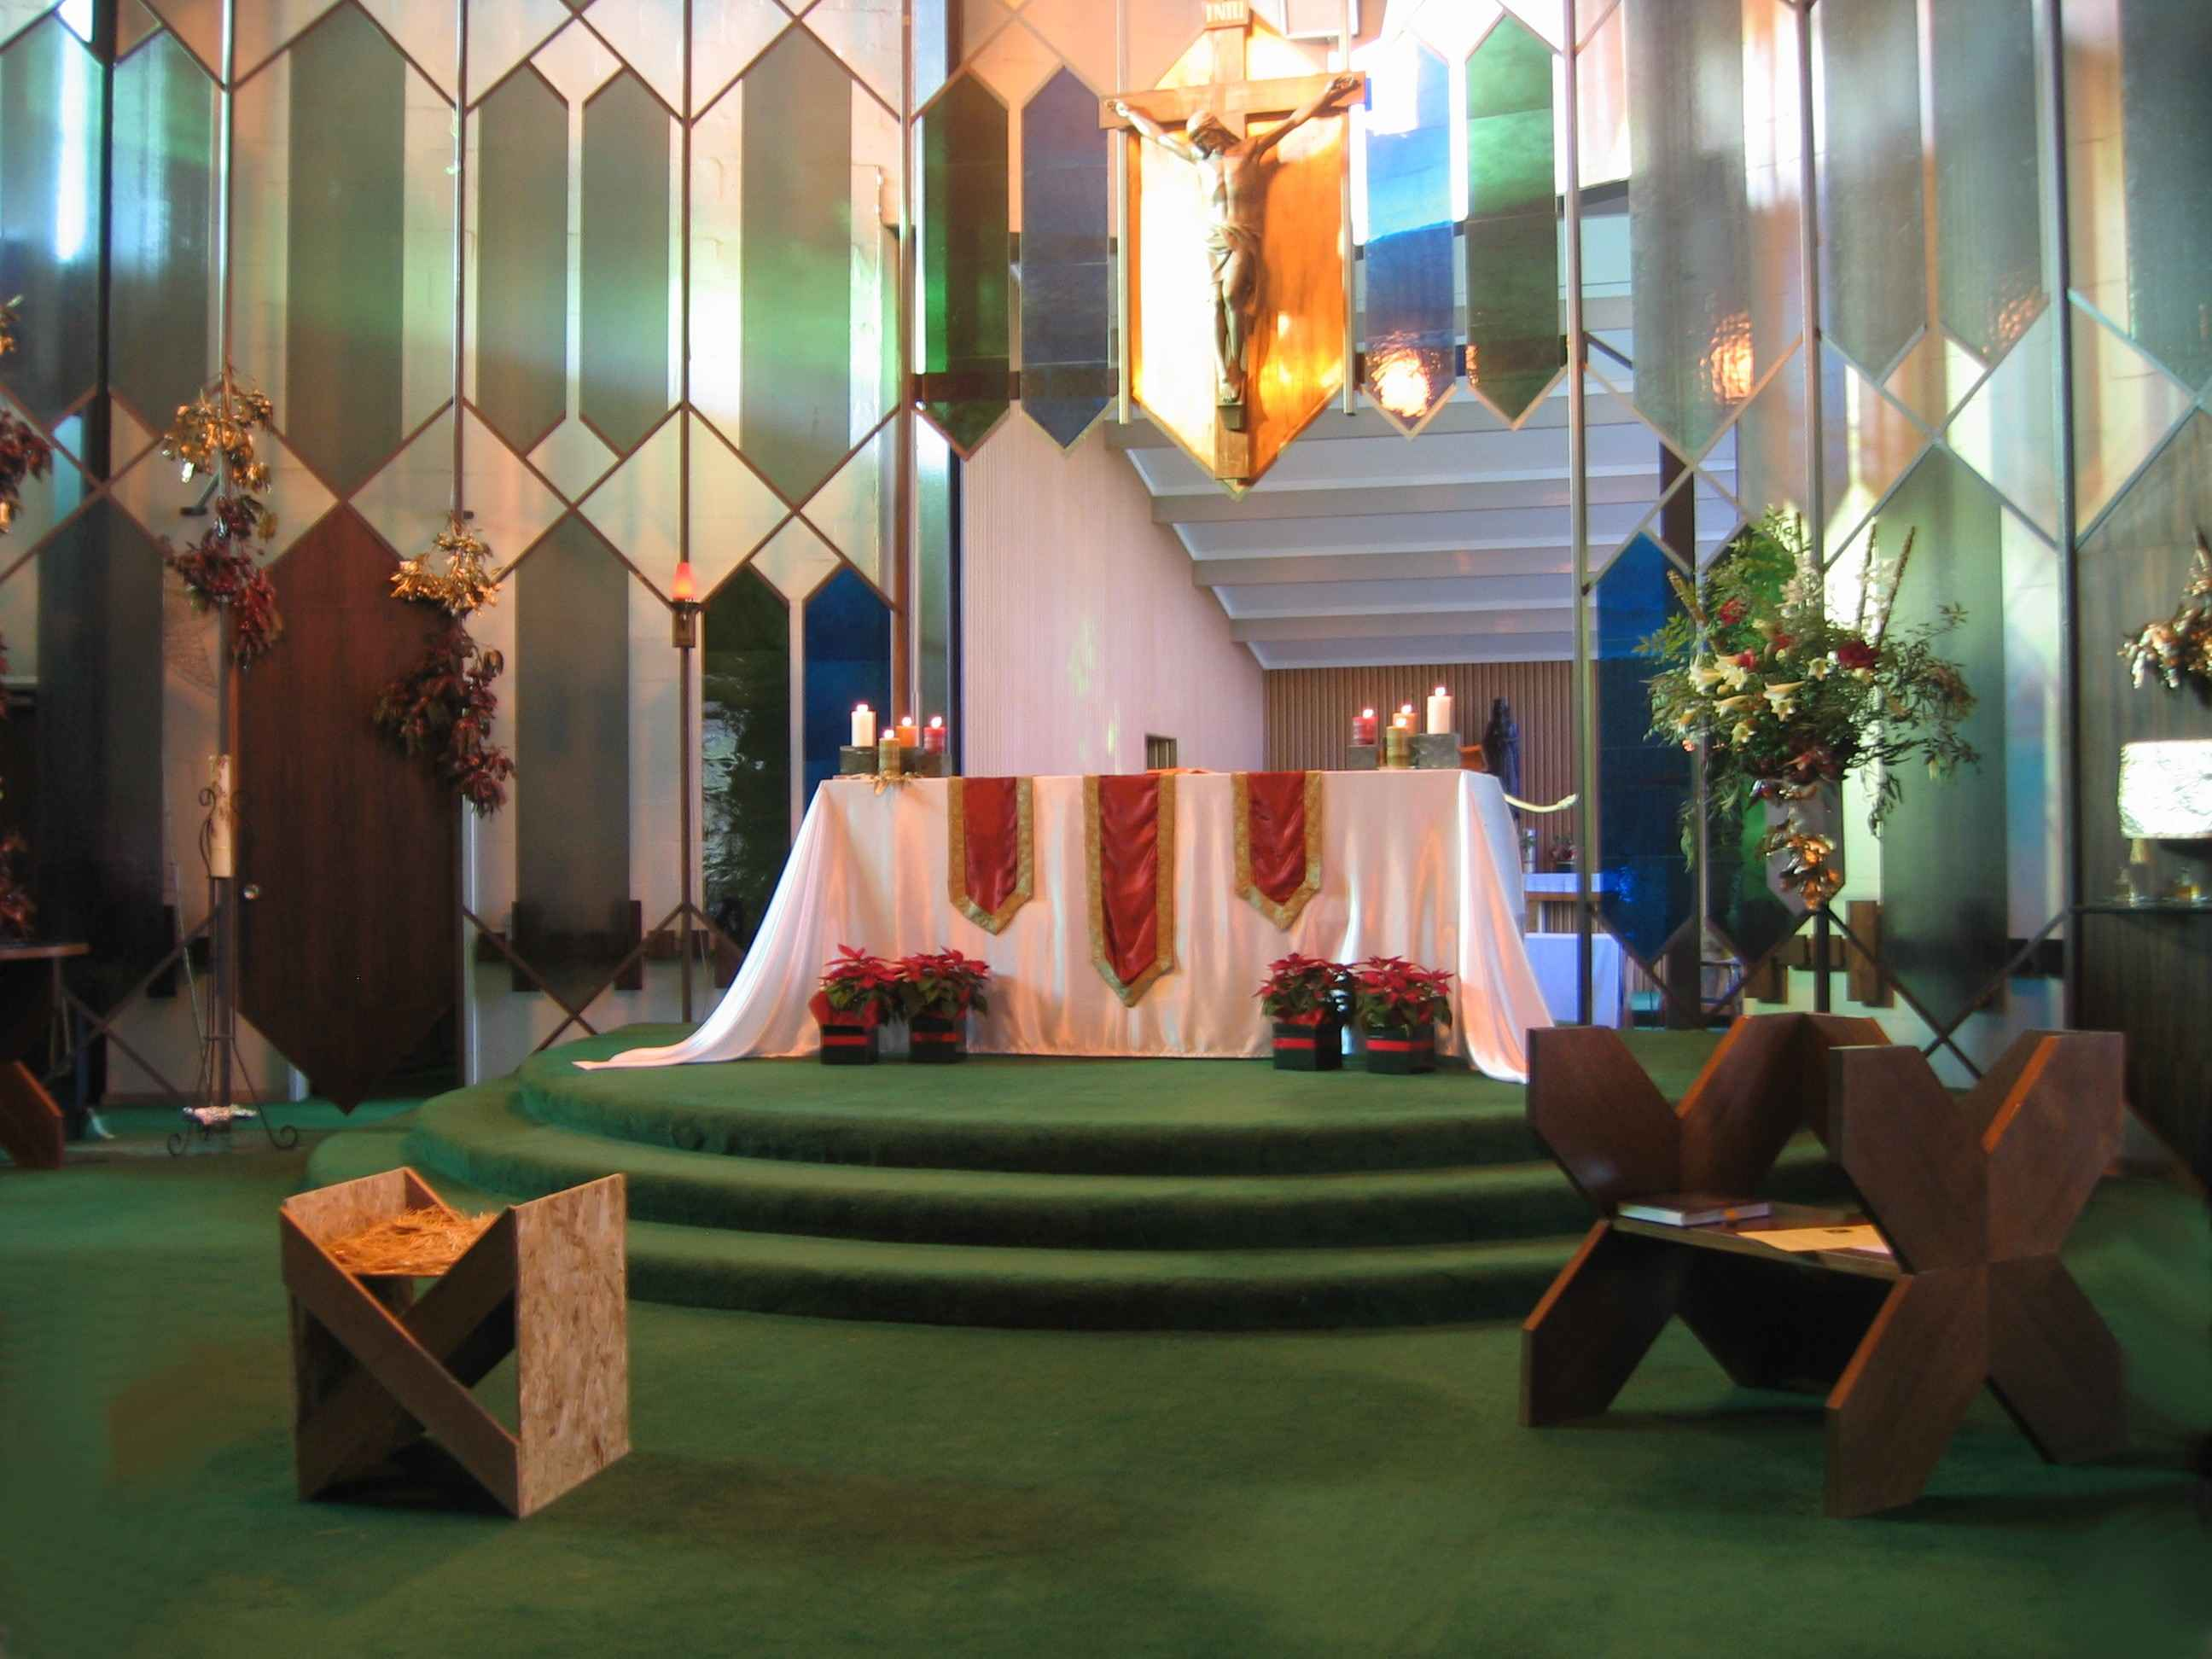 The altar for Christmas Eve Mass at MI, 2007